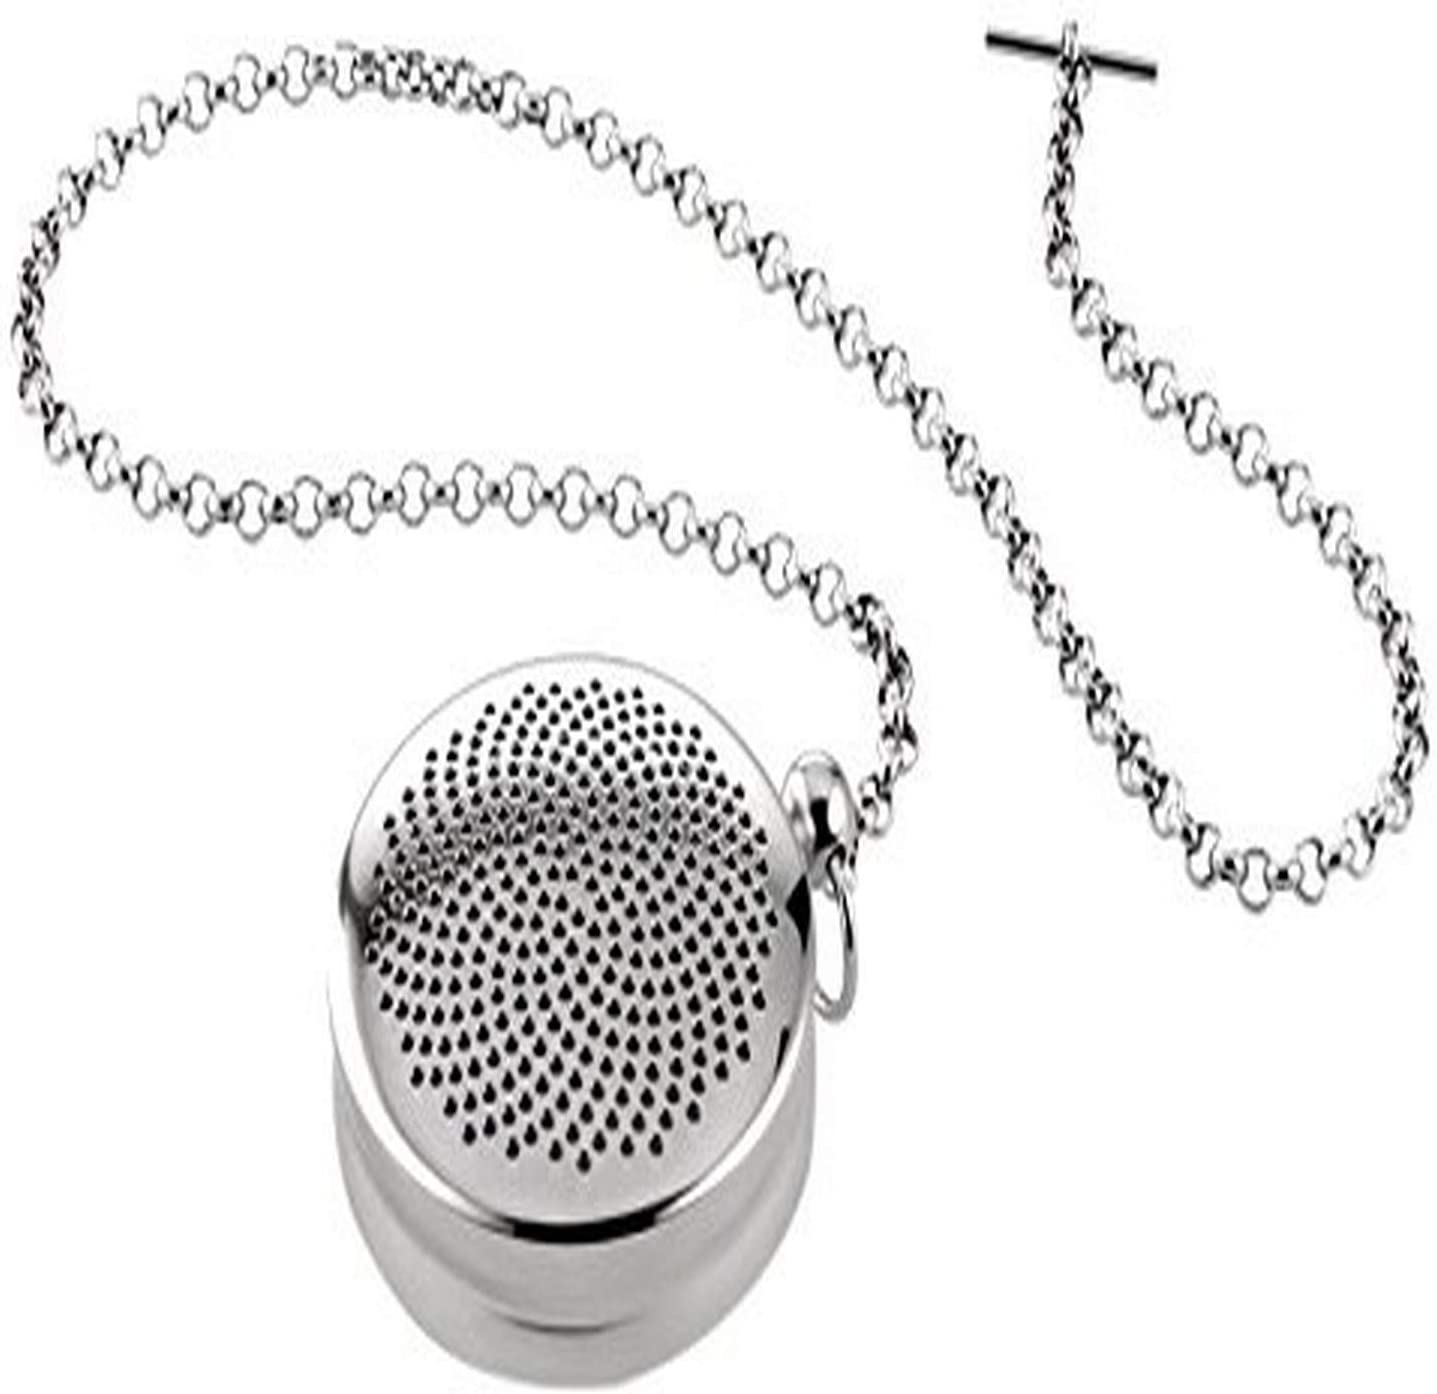 Alessi T-Timepiece Tea Infuser One size Steel Limited price Max 47% OFF